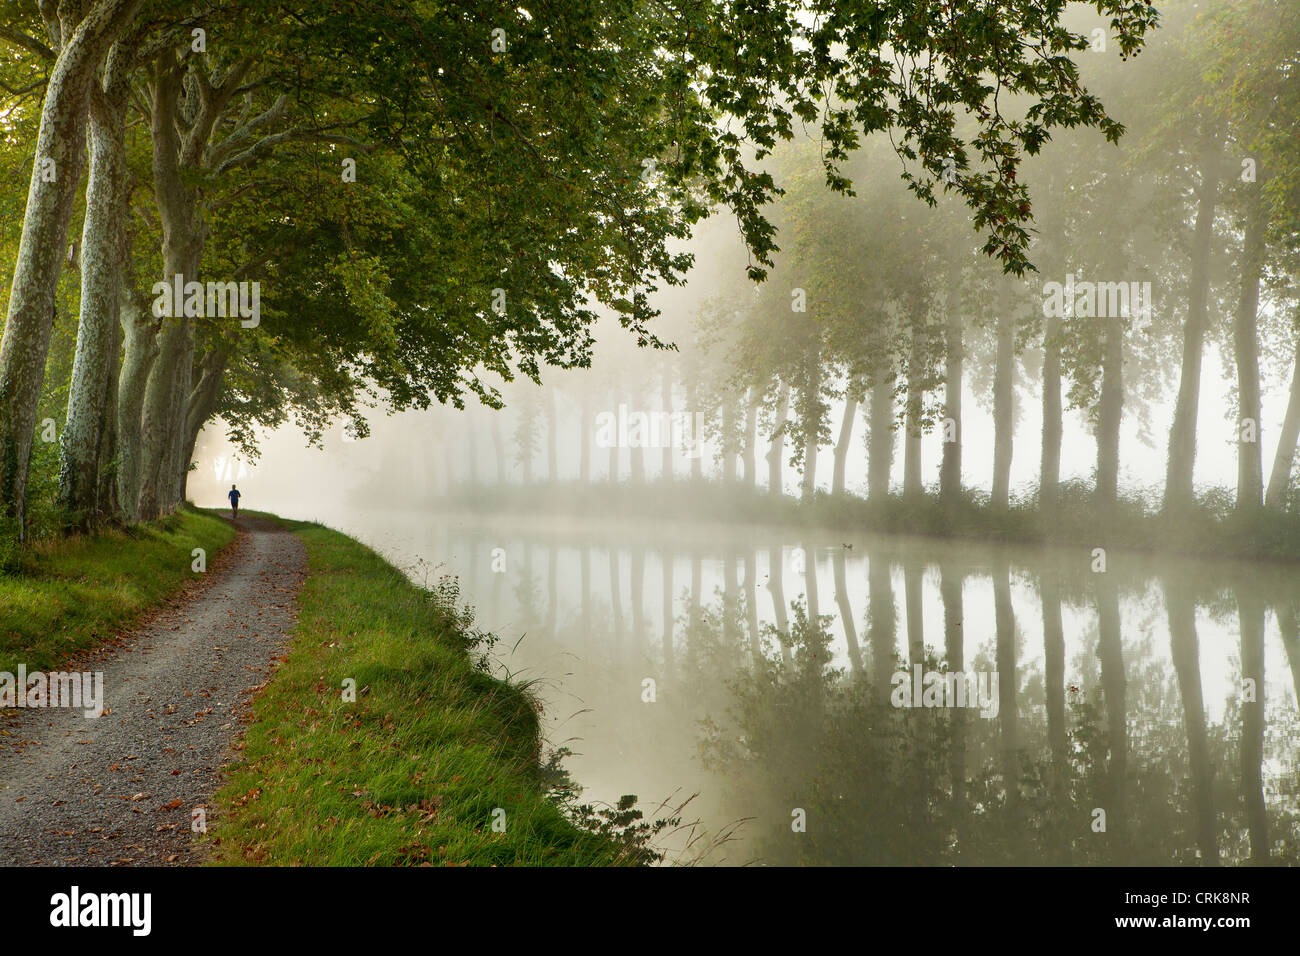 a jogger on the towpath of the Canal du Midi nr Castelnaudary, Languedoc-Rousillon, France - Stock Image